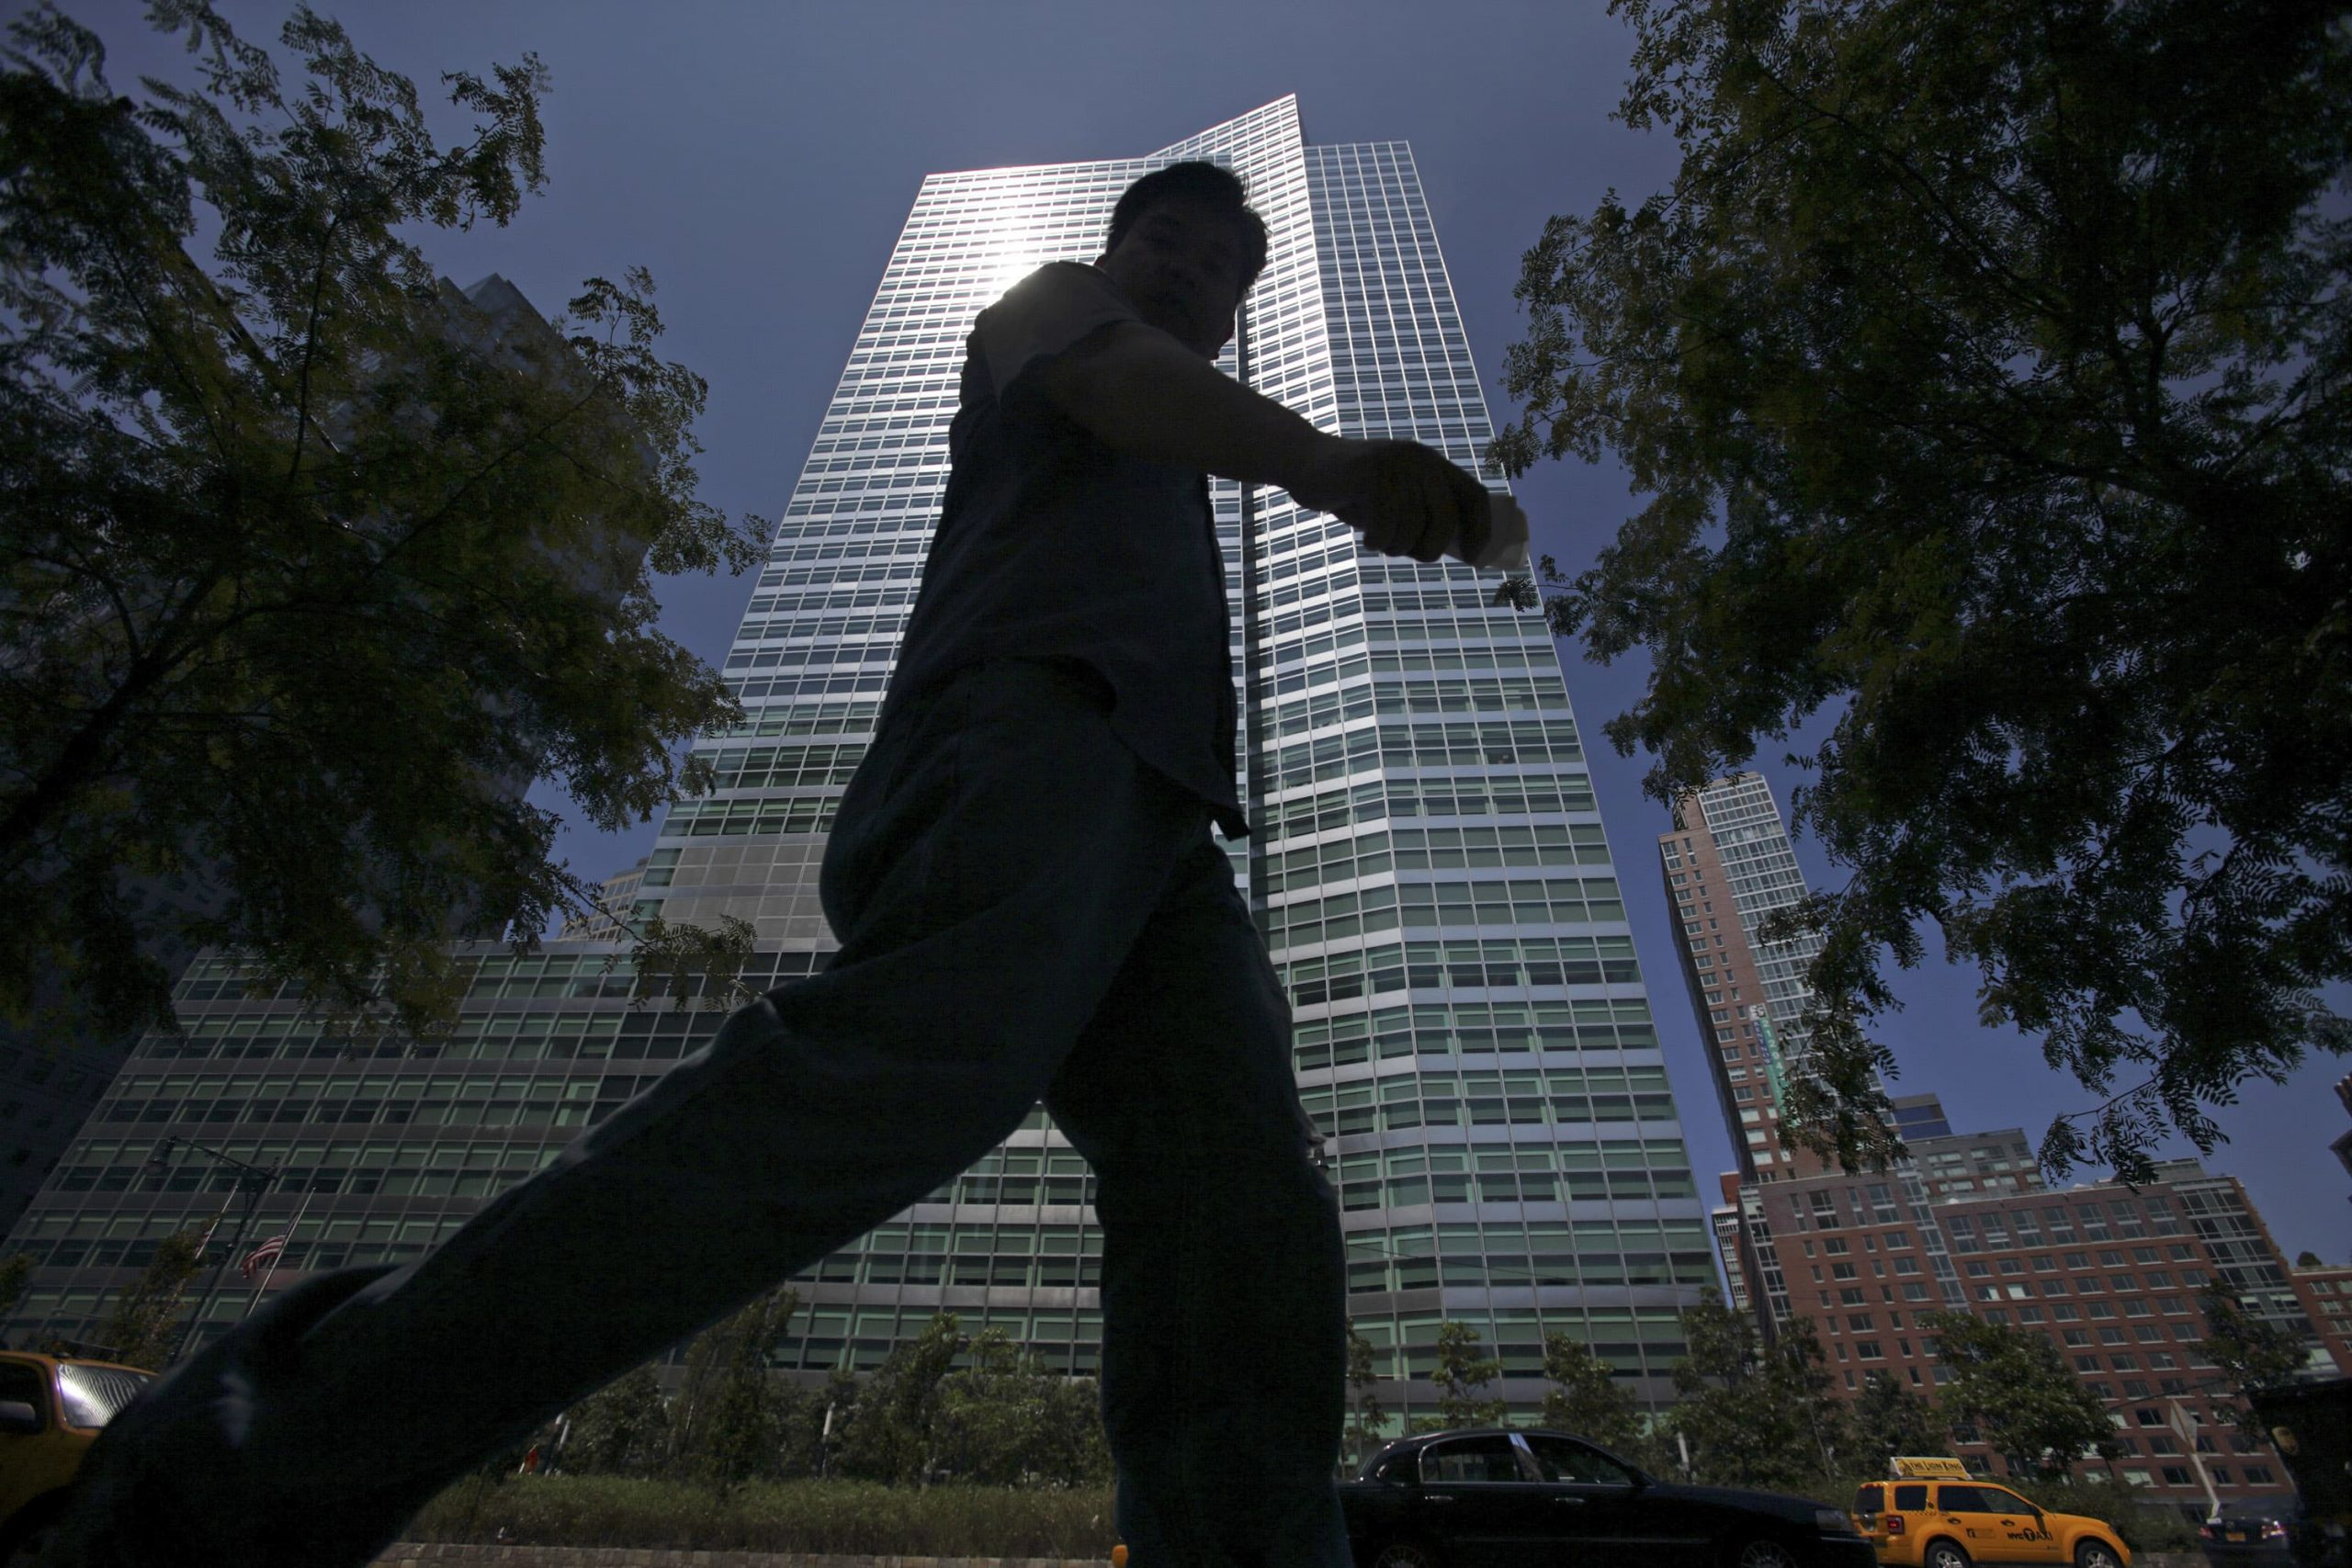 goldman-sachs-is-making-us-employees-report-their-vaccination-status-ahead-of-return-to-offices